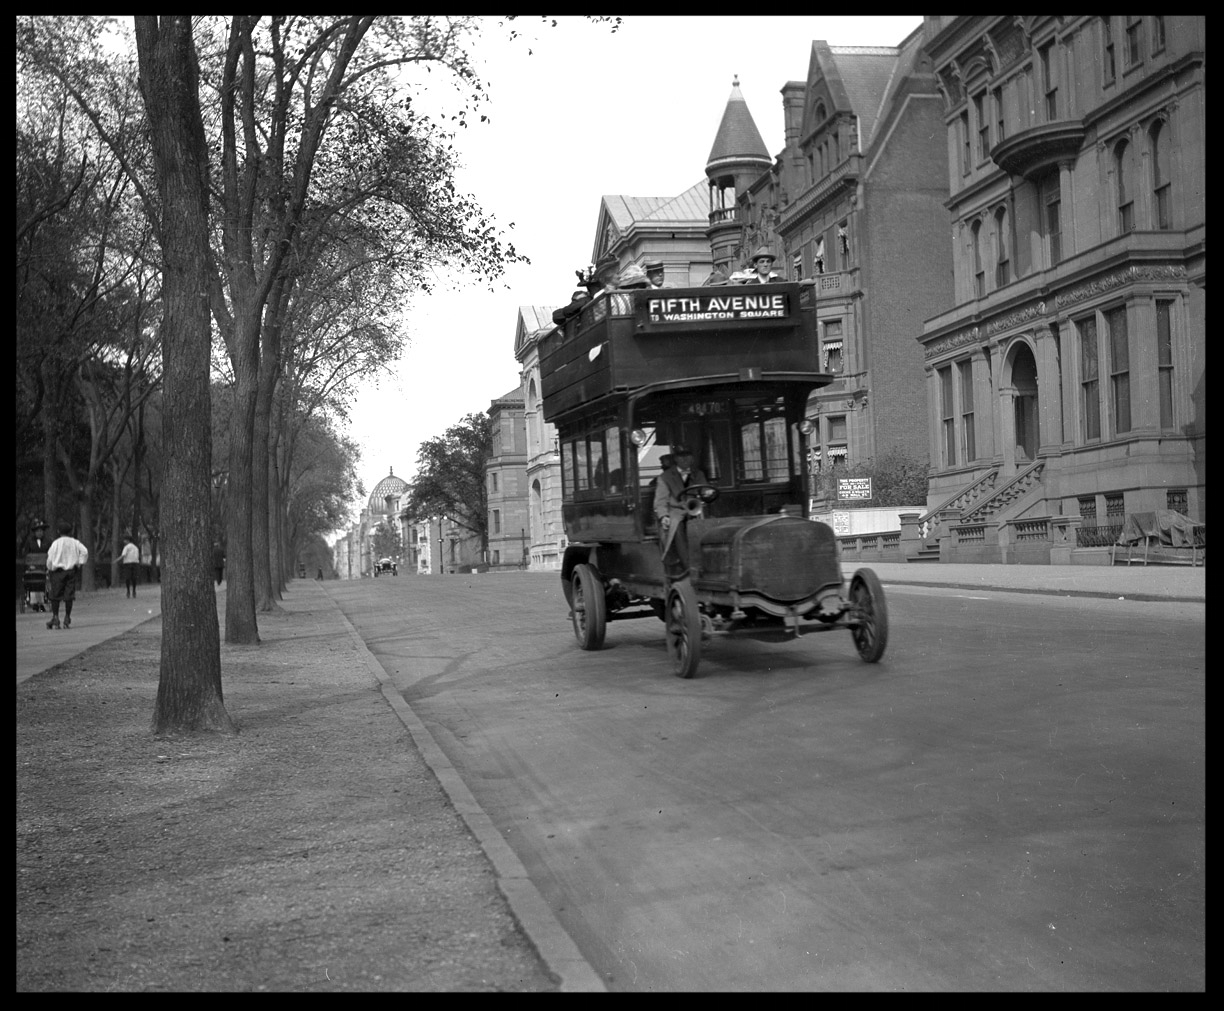 5th Ave Trolly Bus c.1915 from original 4x5 negative